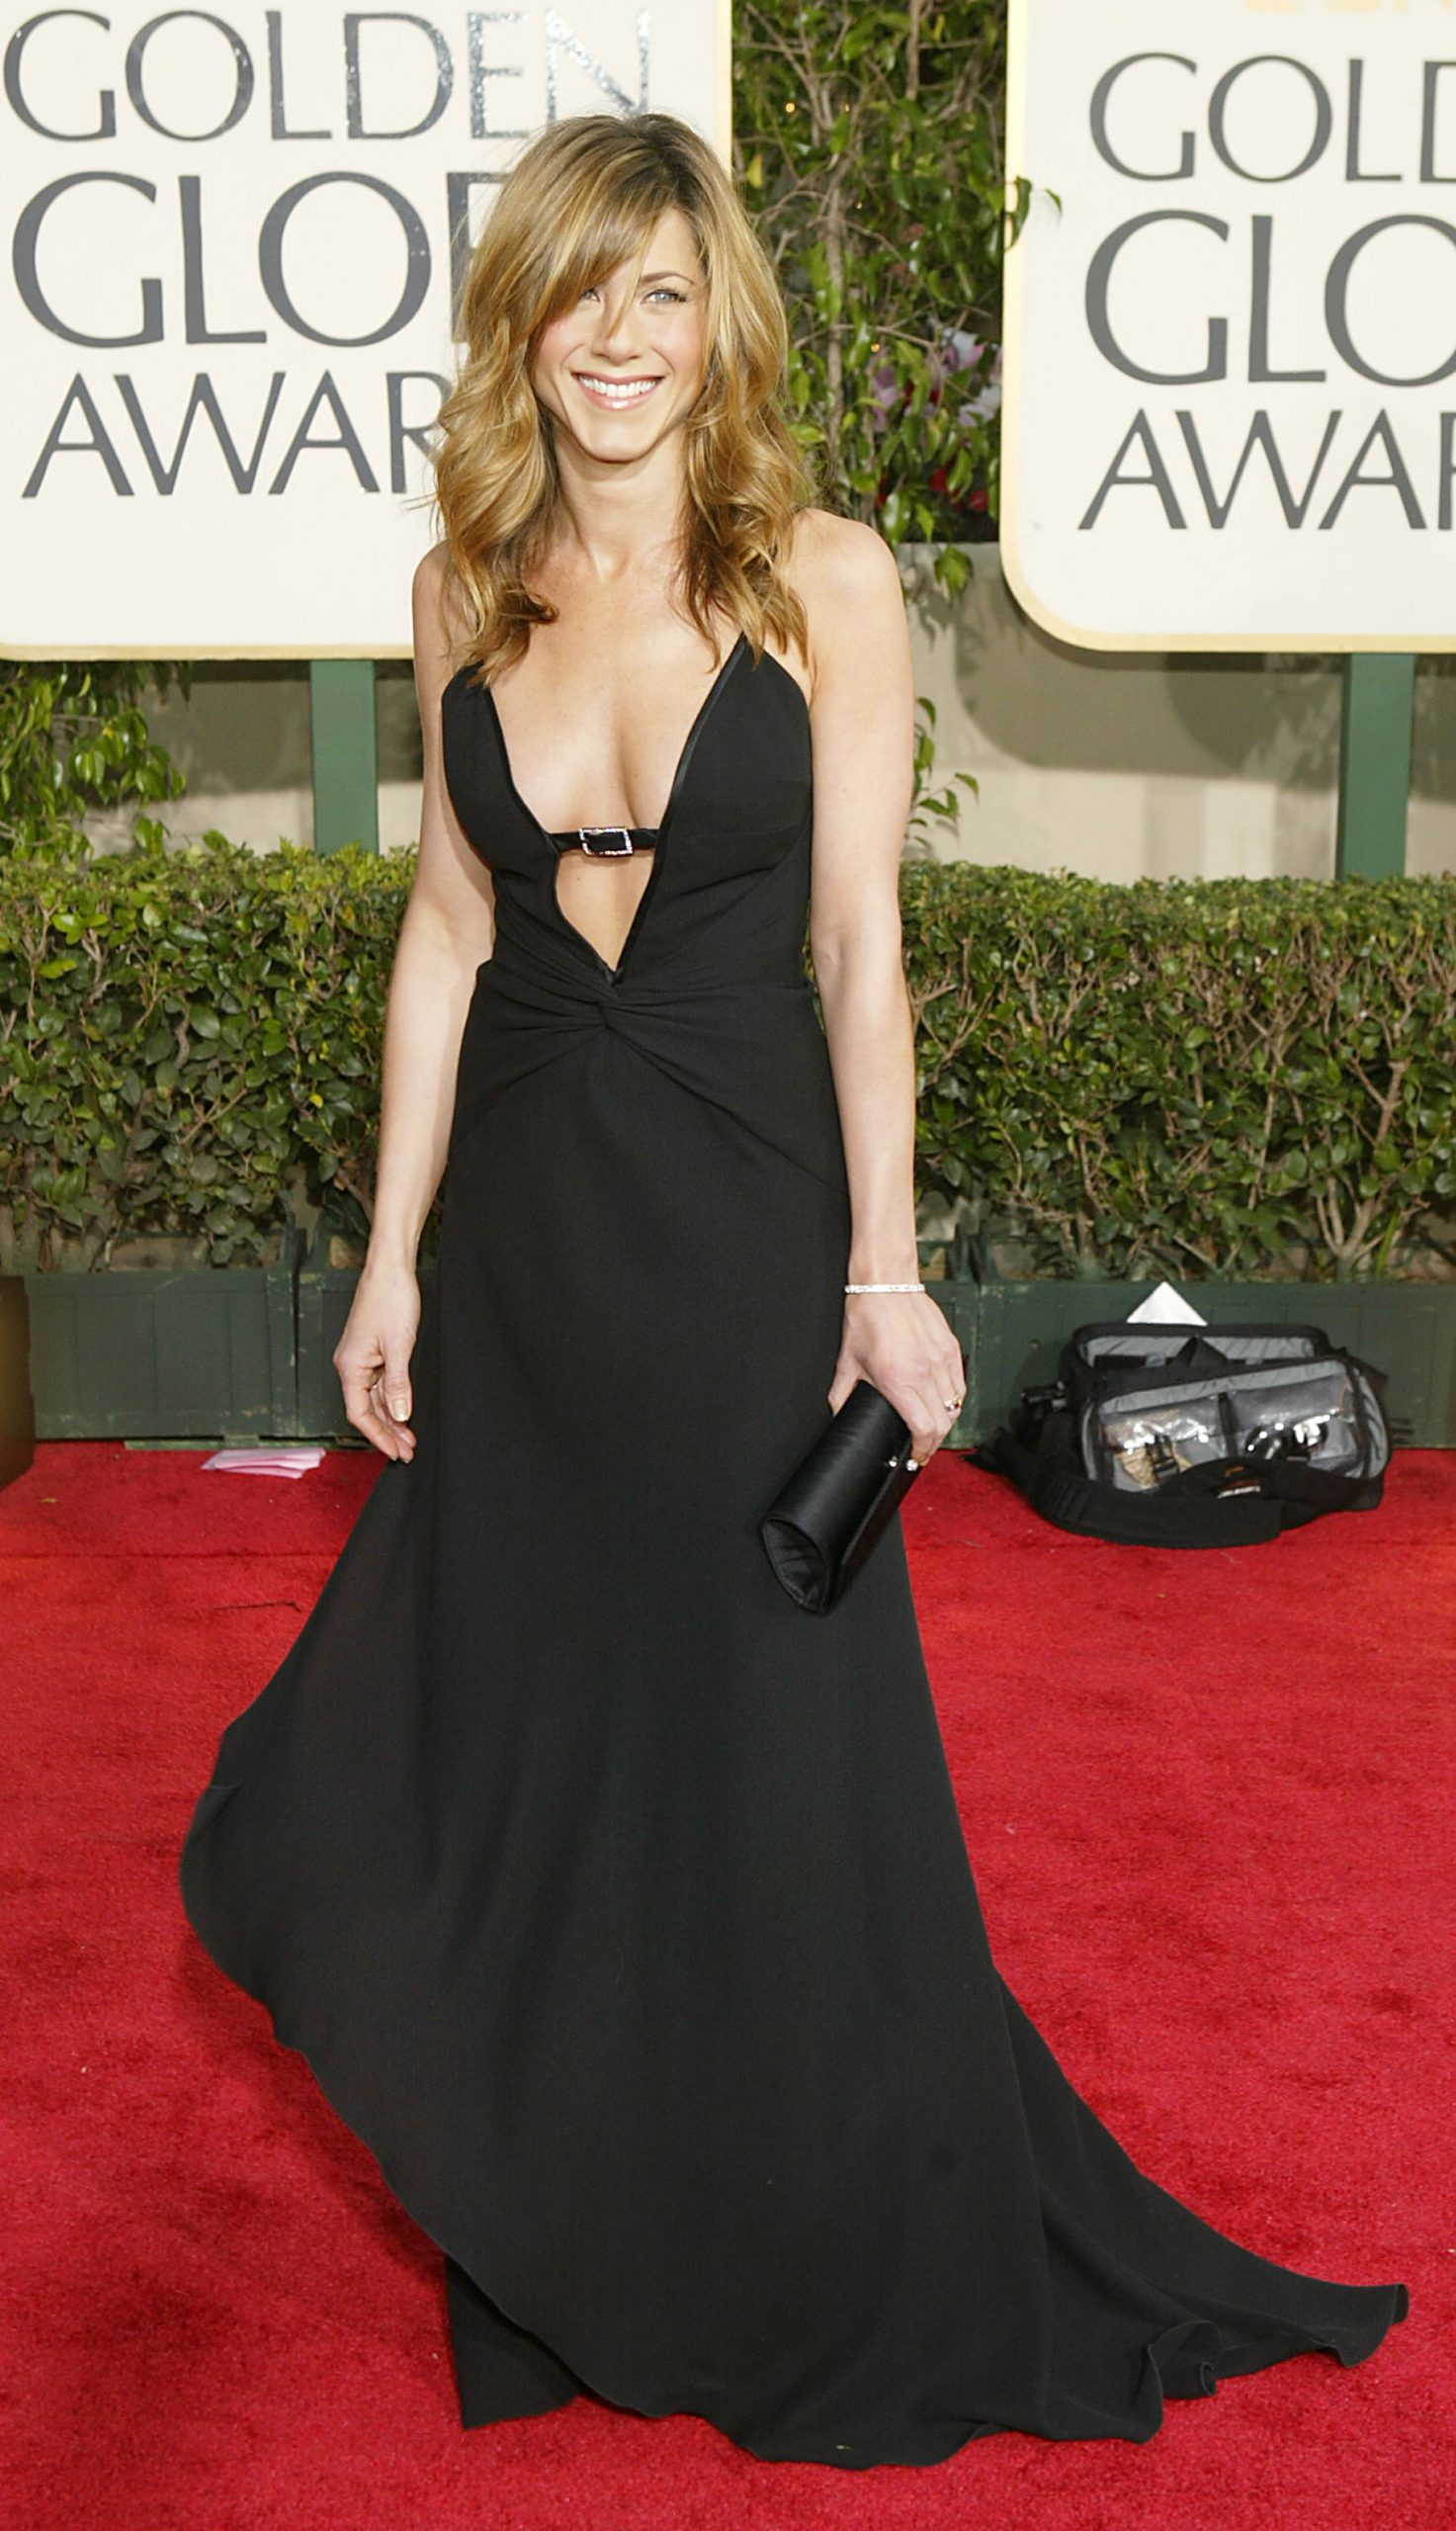 Jennifer Aniston wears a gown with a low neckline to the Golden Globe Awards in 2004